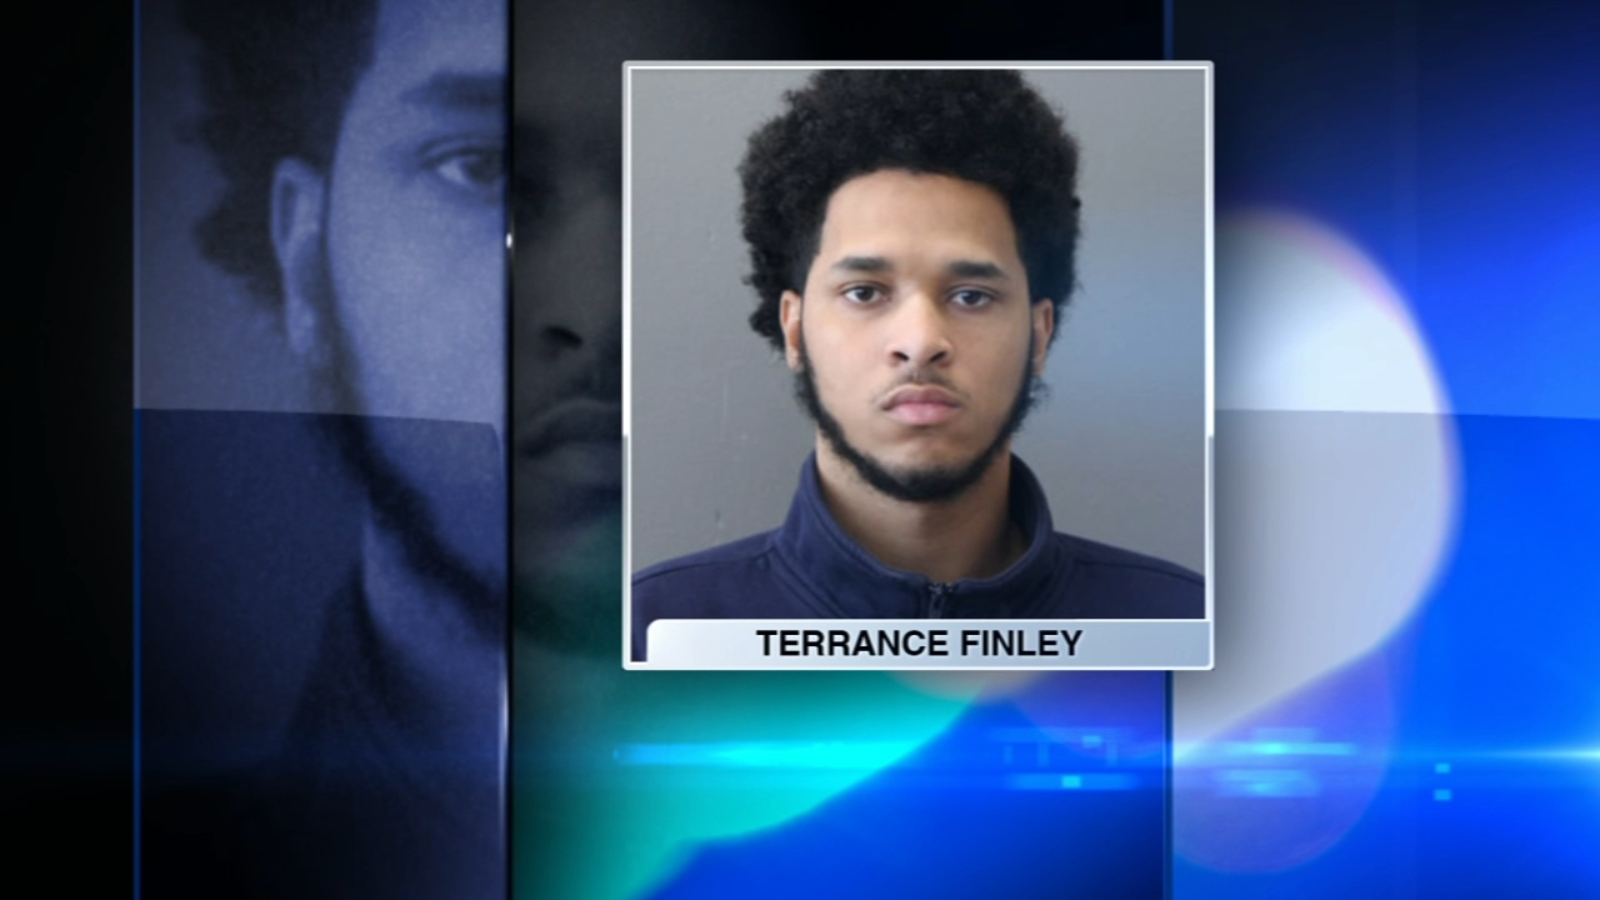 Off-duty Chicago Police Officer Terrance Finley charged ...